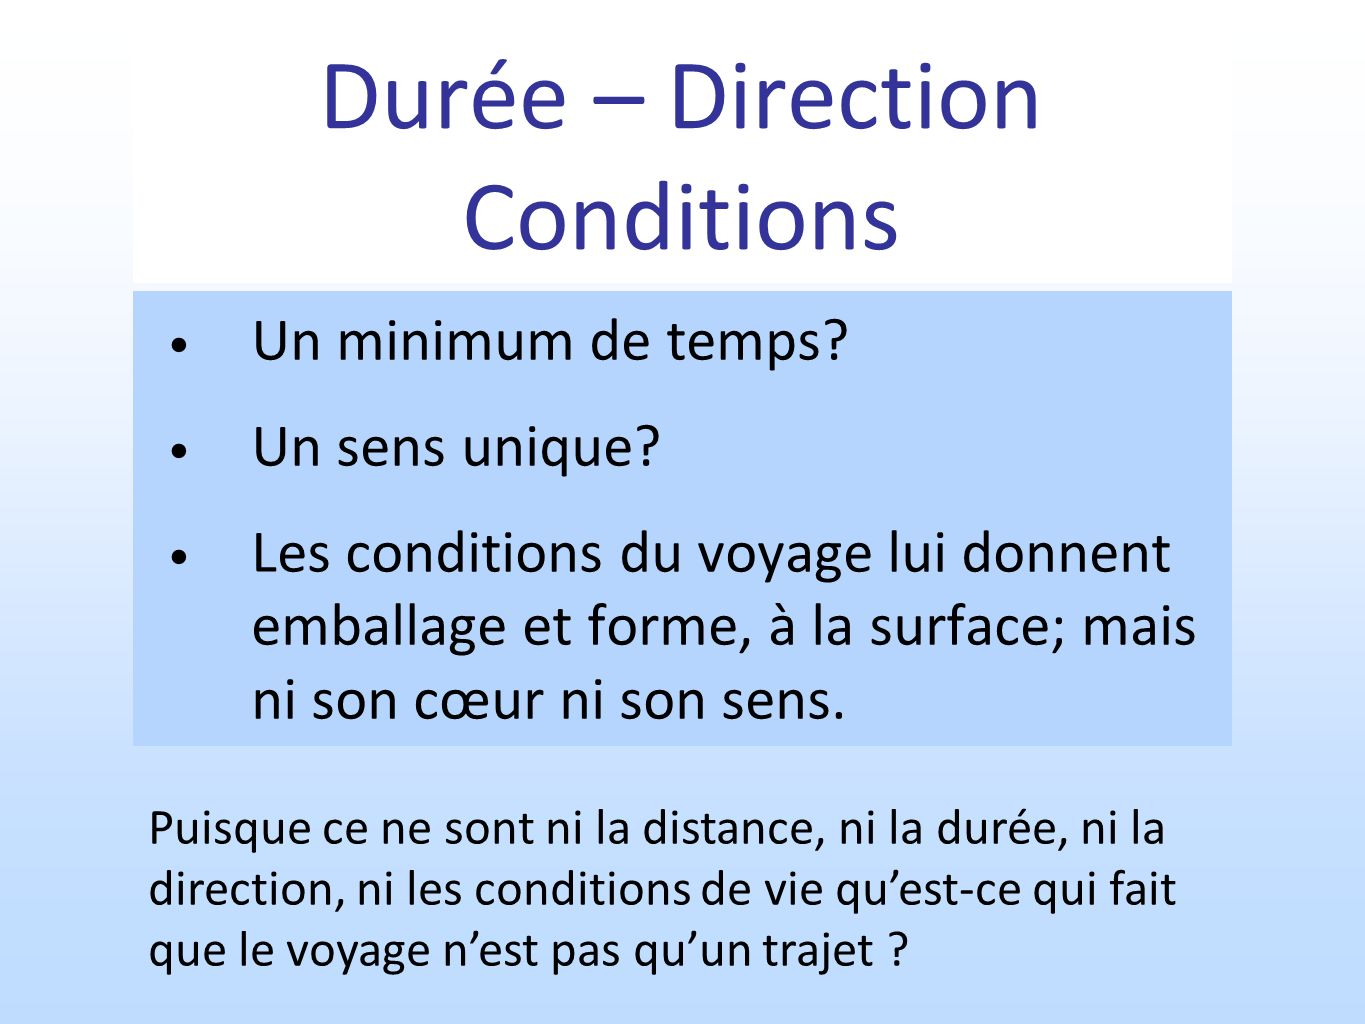 Durée – Direction Conditions